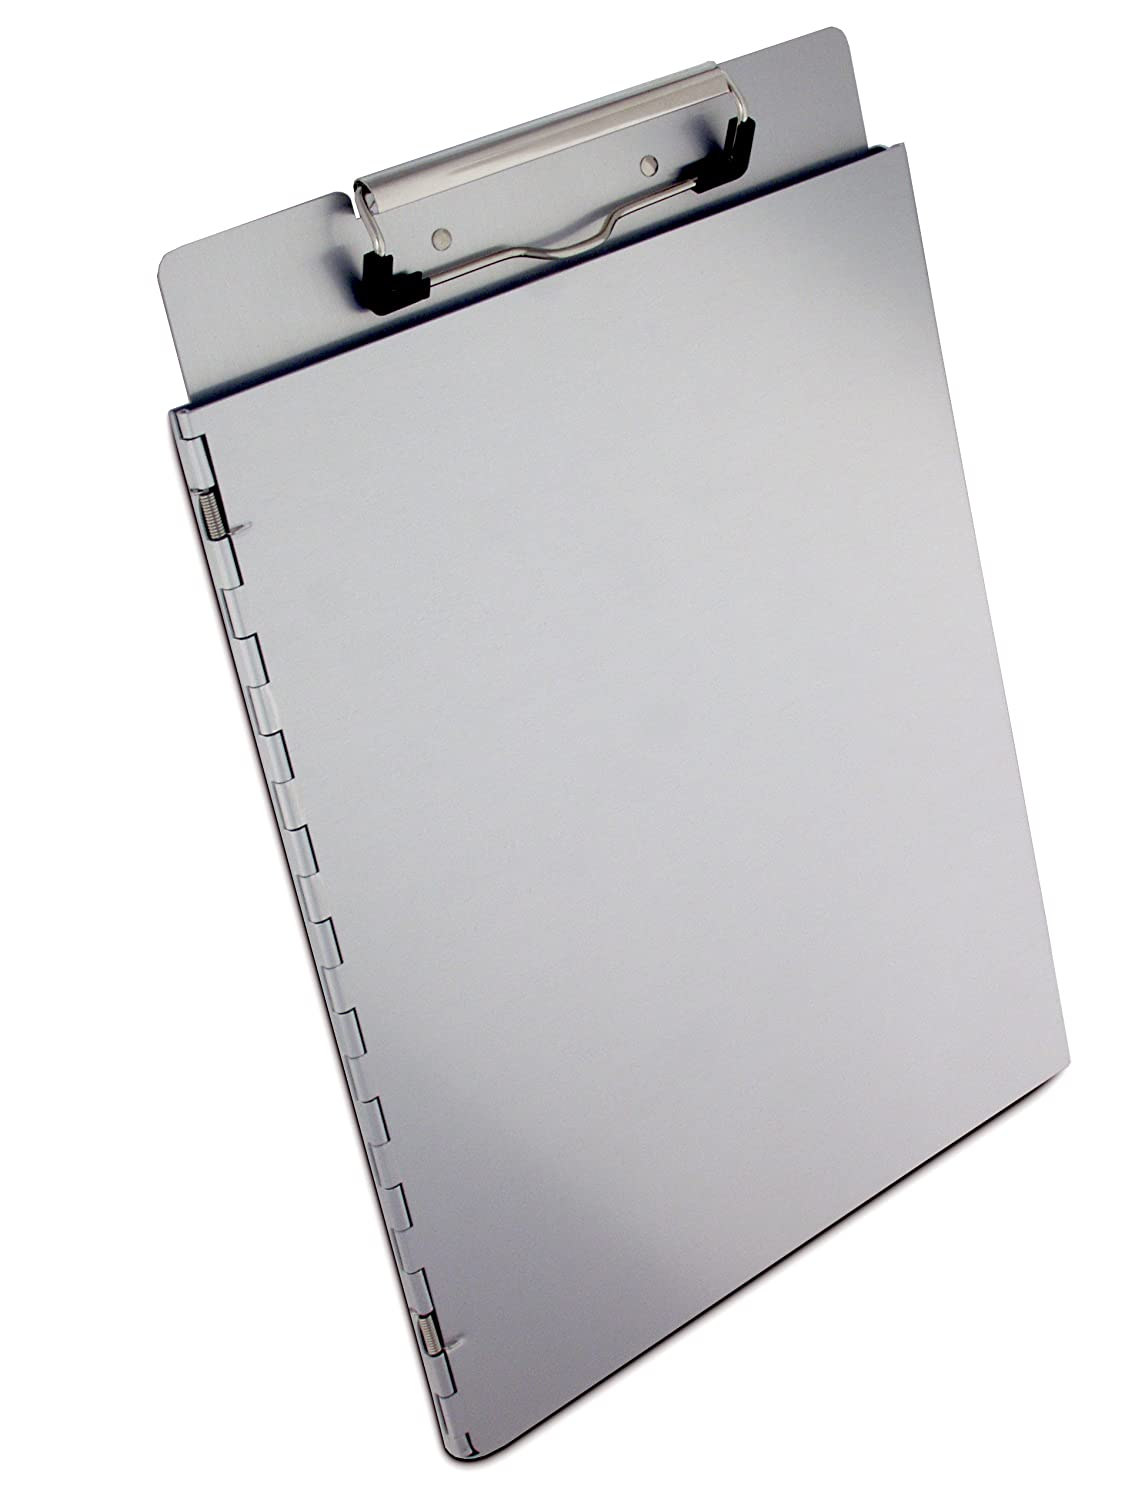 Saunders Recycled Aluminium Portfolio Clipboard with Privacy Cover, Letter Size, 8.5 X 12-Inch, 22017